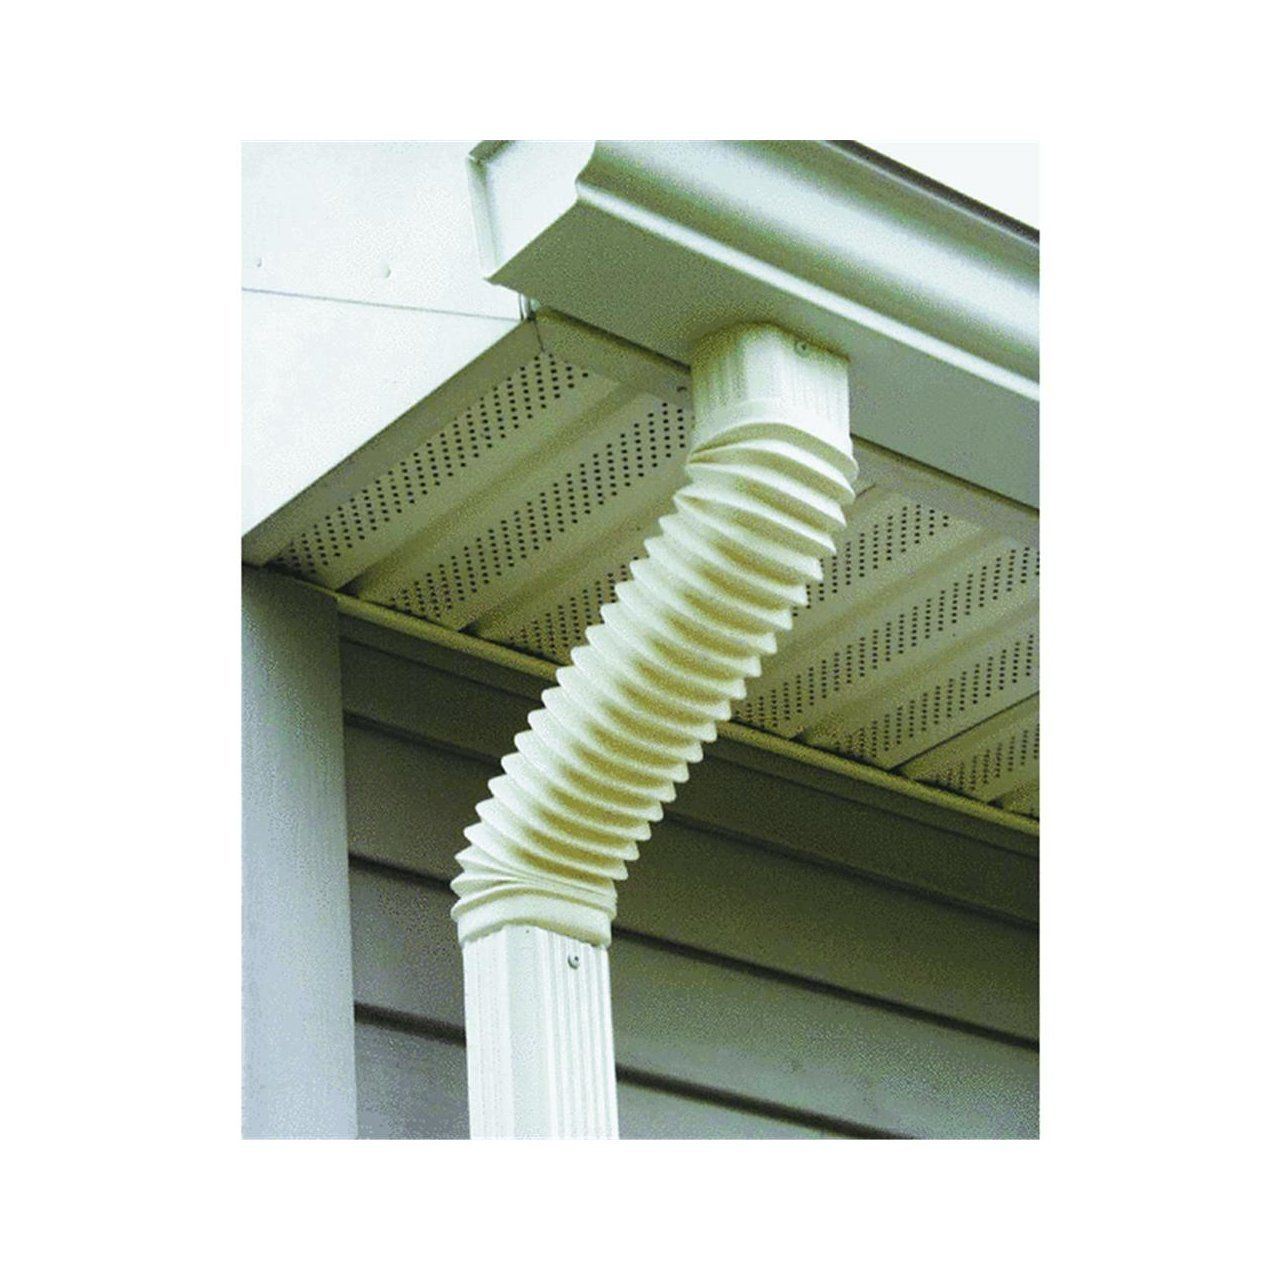 Amerimax Home Products 3708419 2x3 Flex Elbow Brown To View Further For This Item Visit The Image Link Flex Gutters Flexible Design